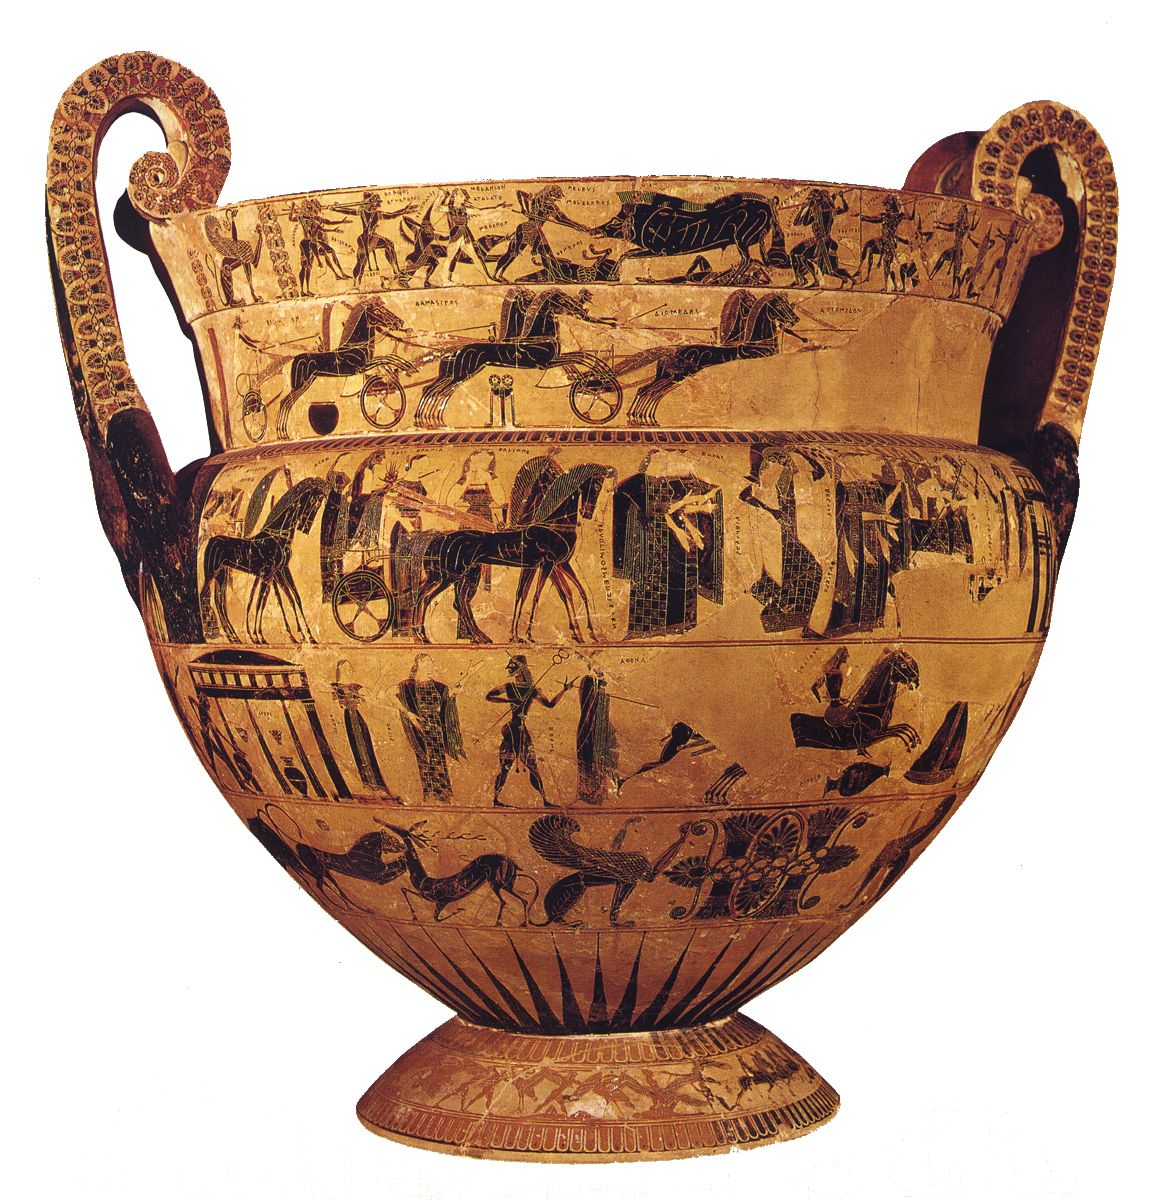 Franois vase was discovered by franois alessendro in 1844 in the the francois vase keleitias painter ergotimos potter claypottery black figured phase reviewsmspy